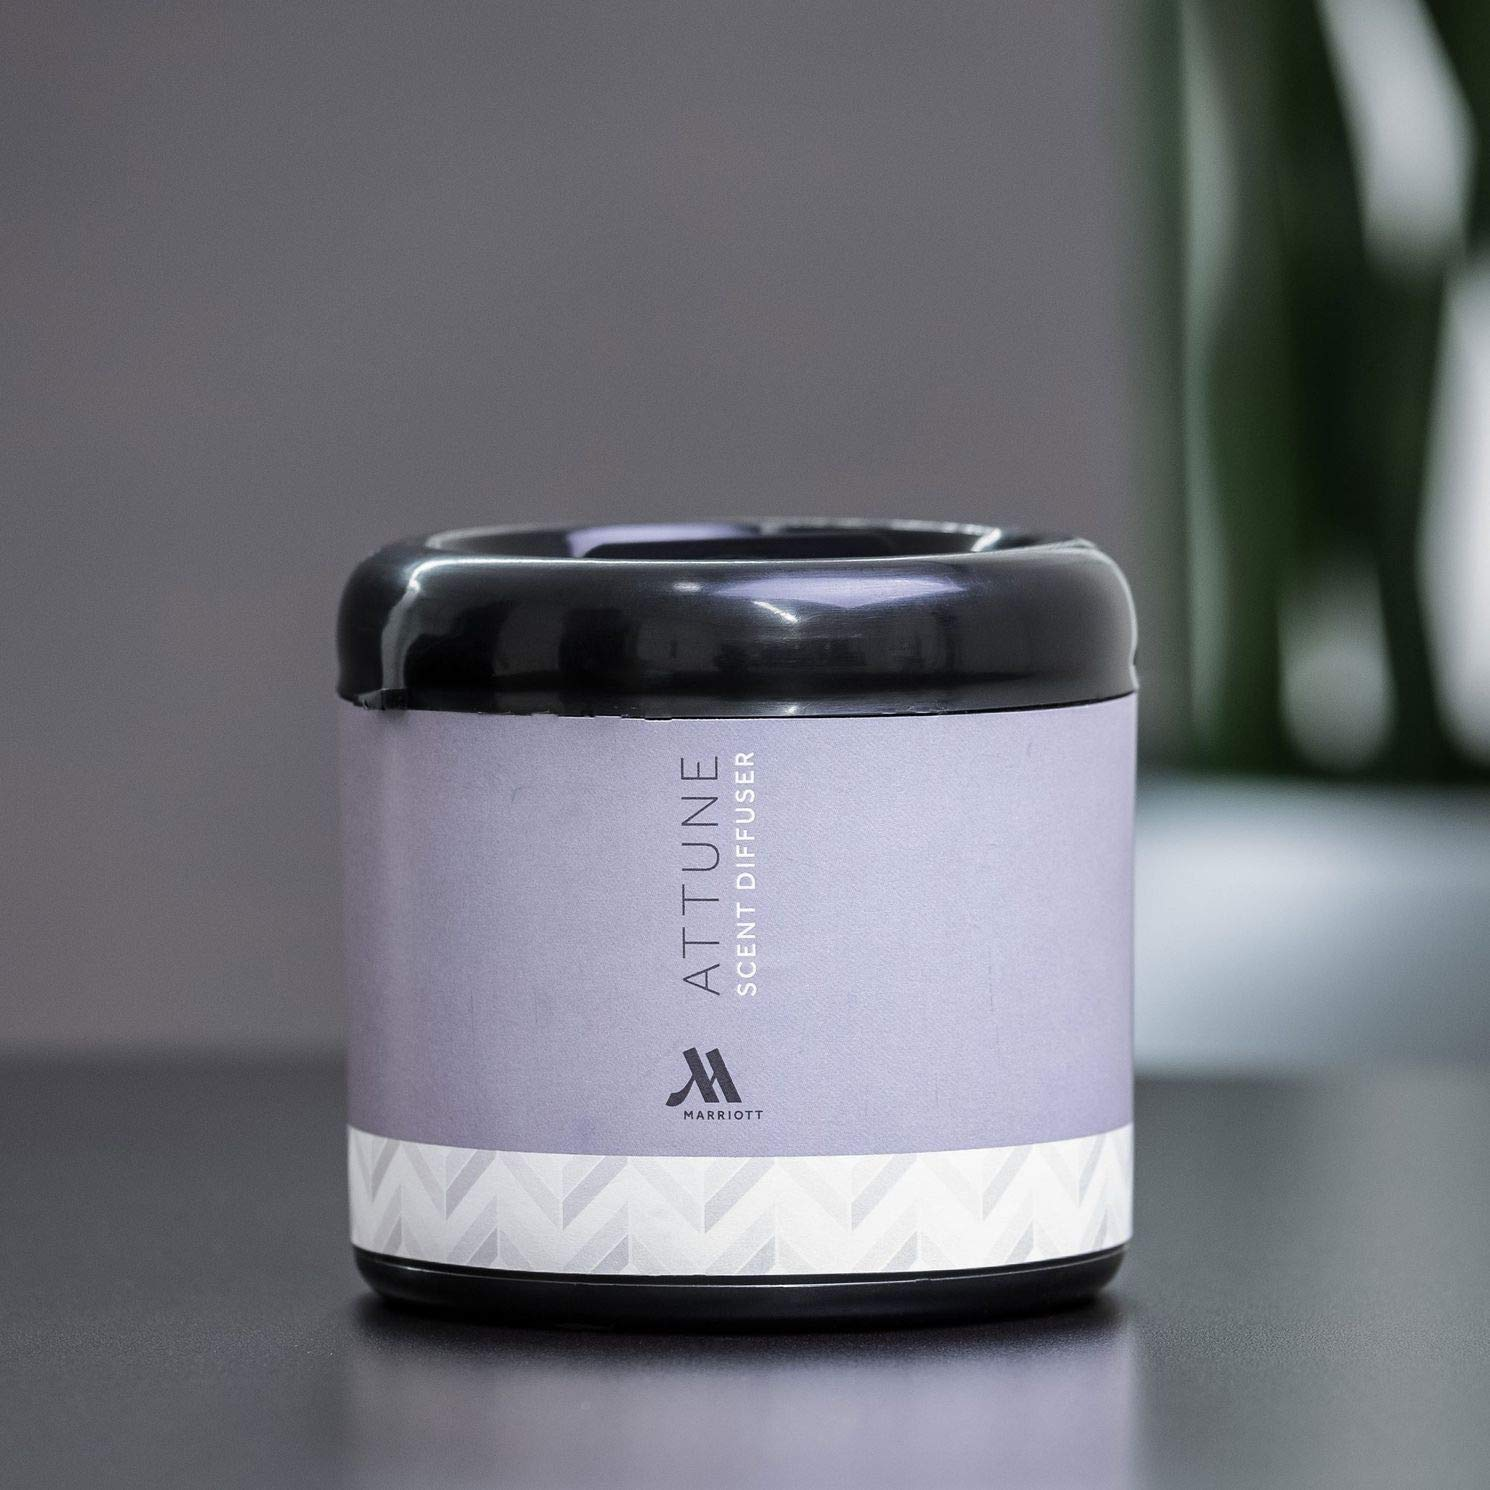 Marriott Attune Scent Diffuser with Cartridge - Aromatherapy Scent Machine with Dry Air Technology - Home Fragrance Set with Signature Hotels Scent